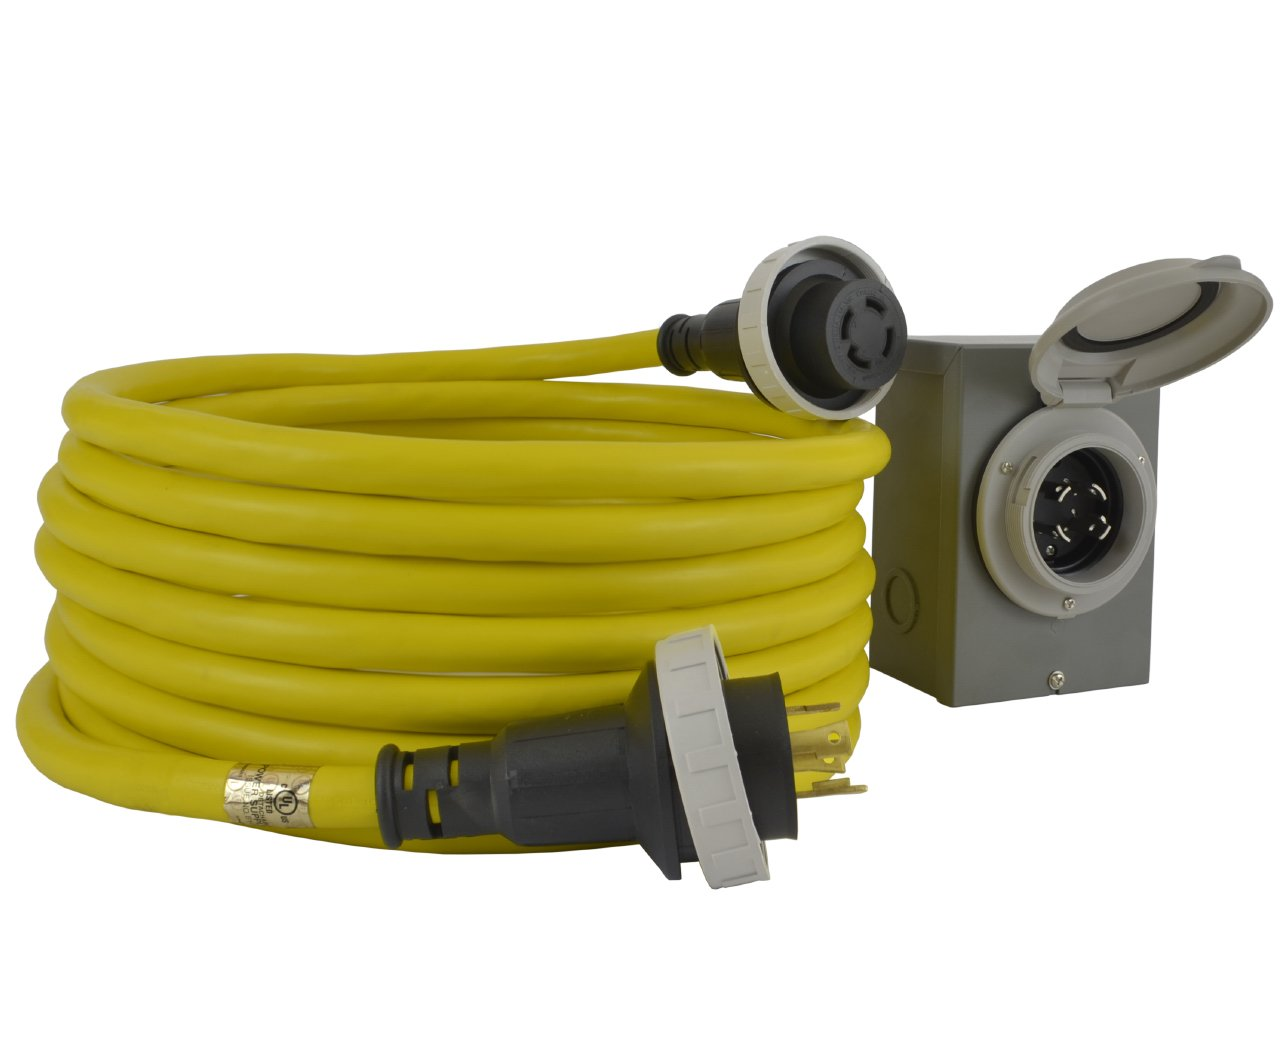 Conntek GIBL1430-025 30 Amp Generator Cord and Inlet Box Temp Power, 25'